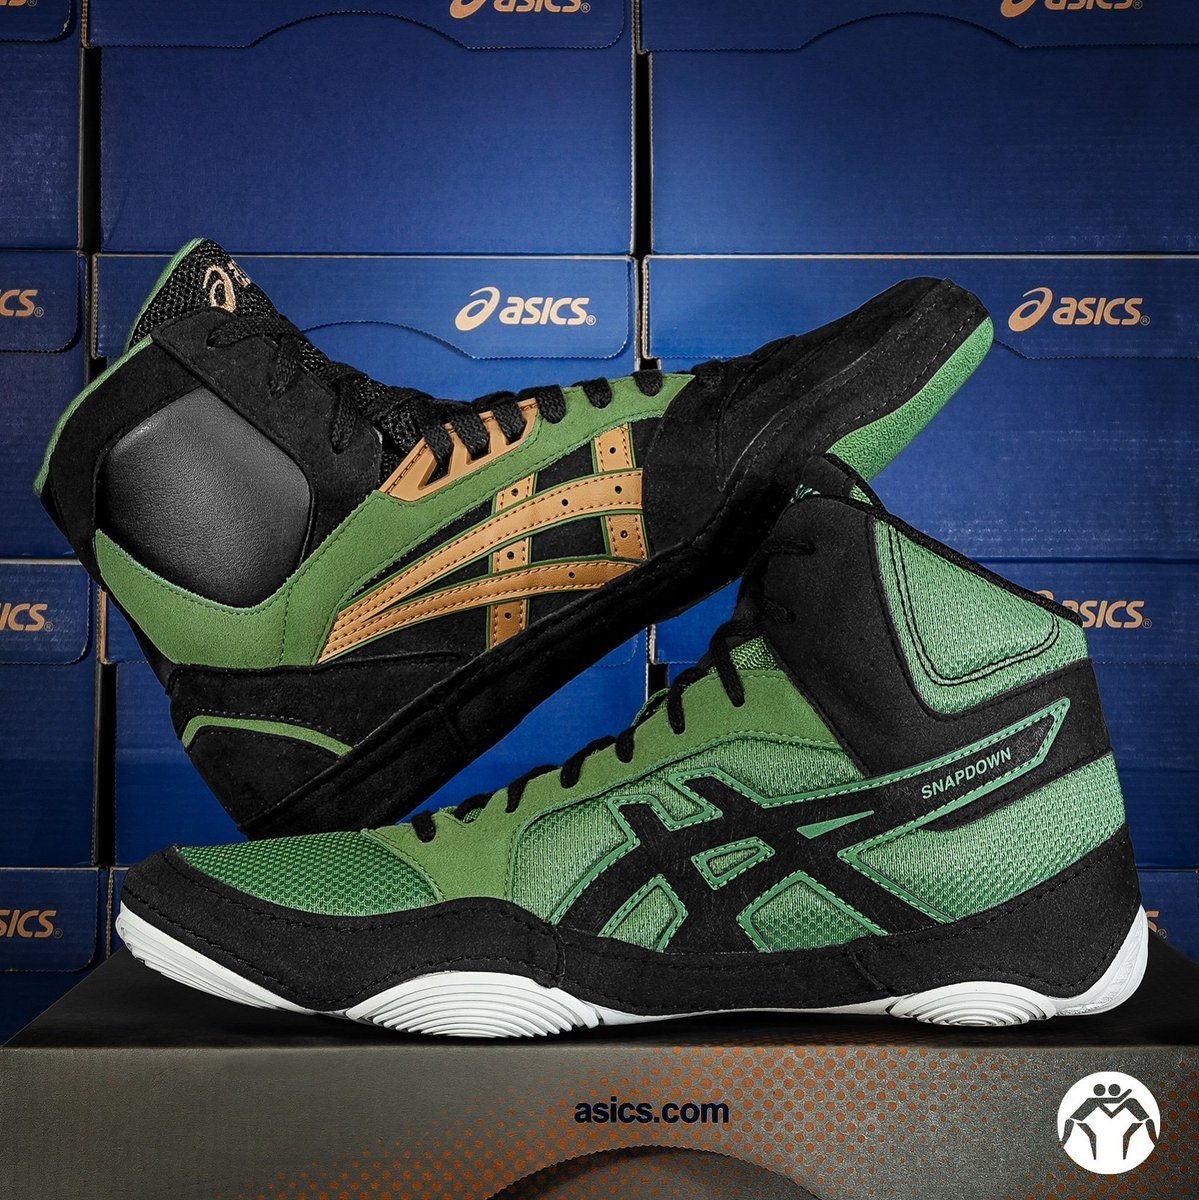 asics wrestling shoes usa today